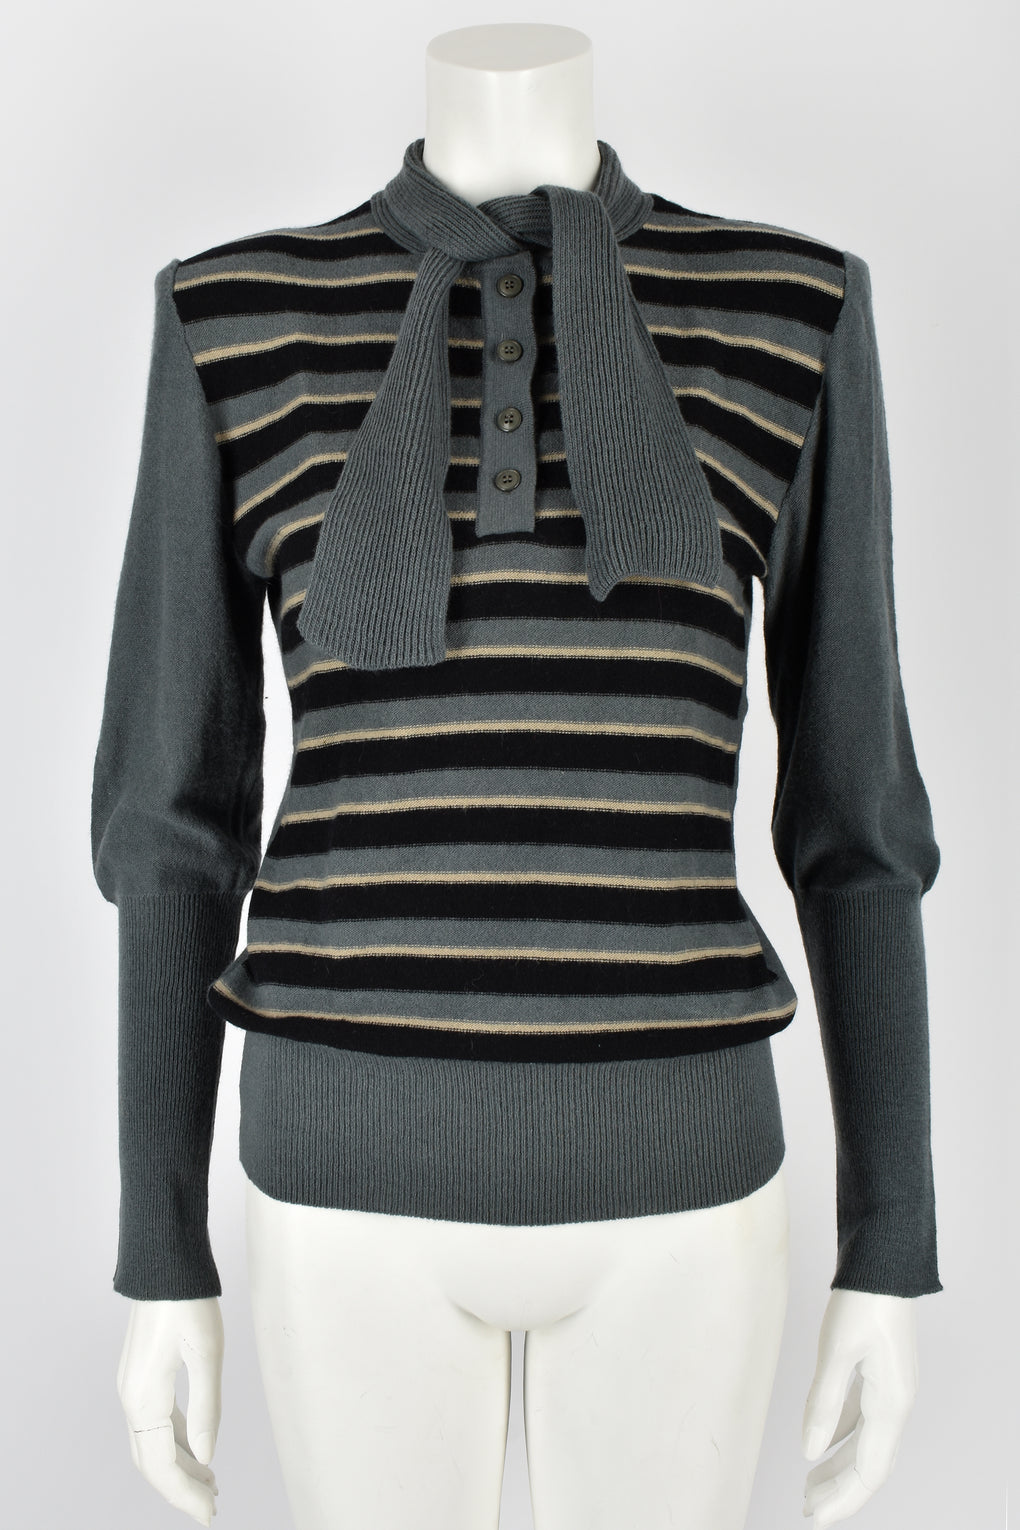 SONIA RYKIEL 70s NOS striped wool sweater M-L